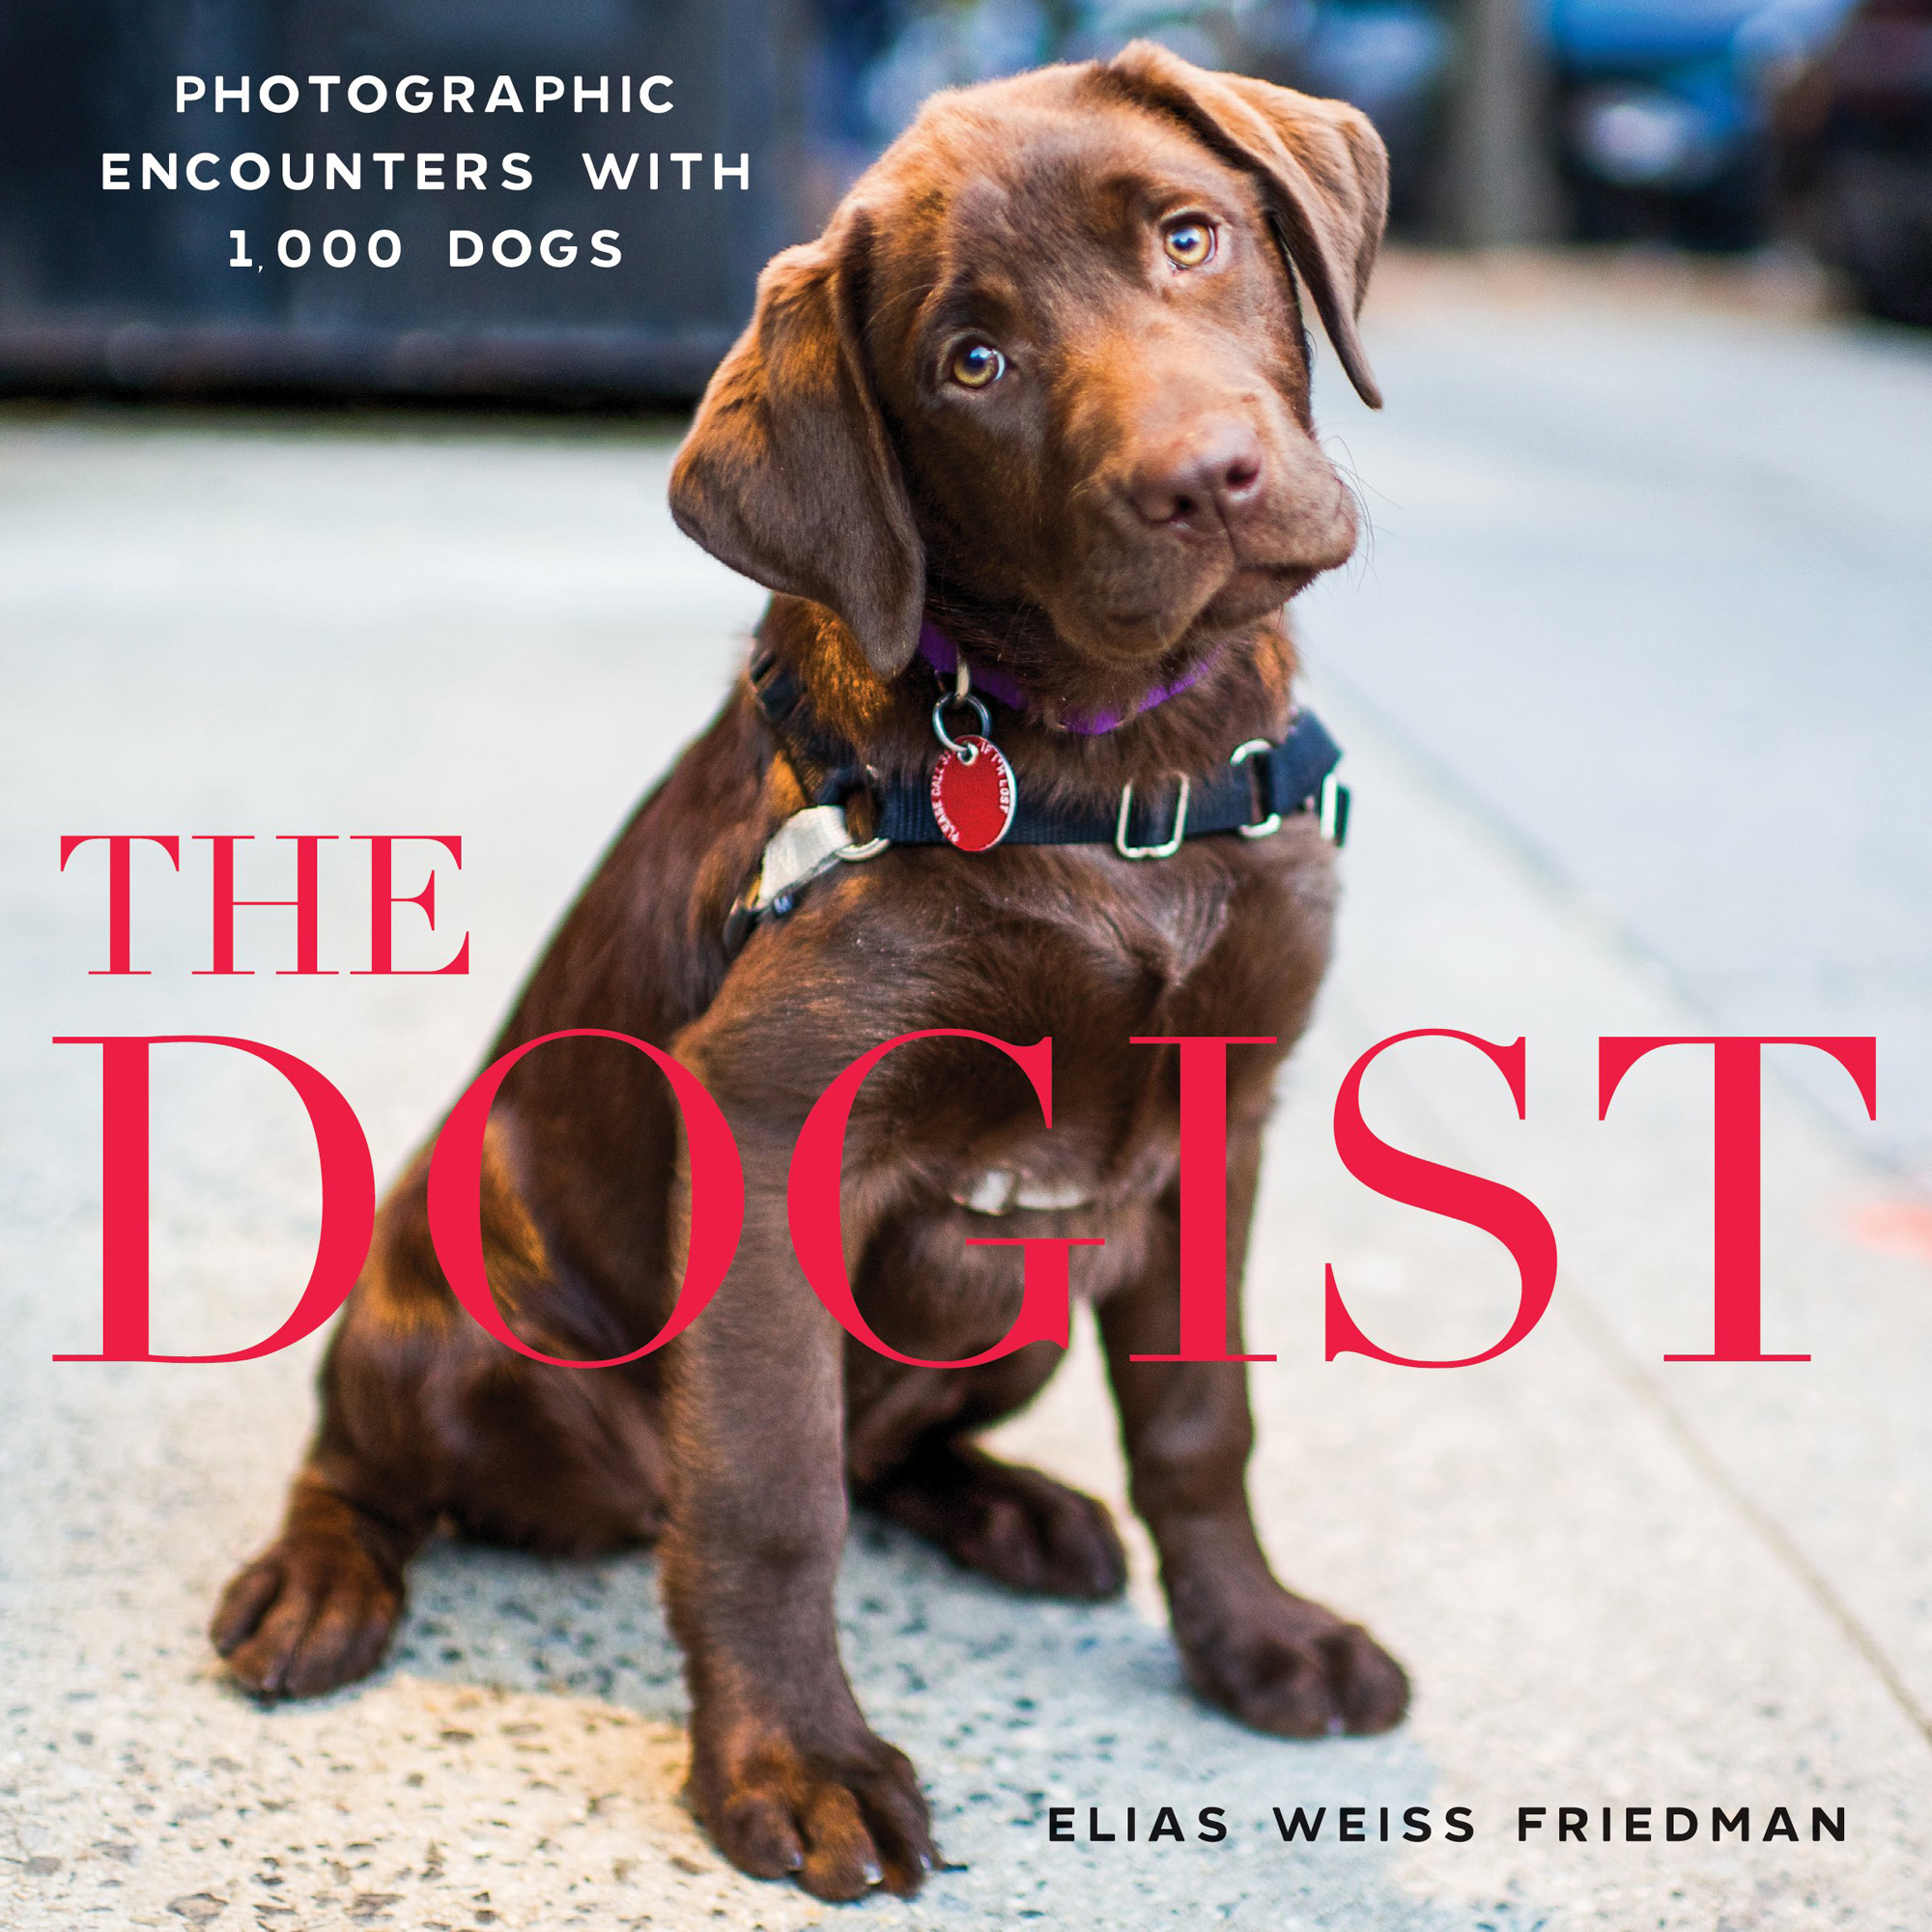 Dogist, The Hardcoverby Weiss (Author), Elias Friedman (Author)